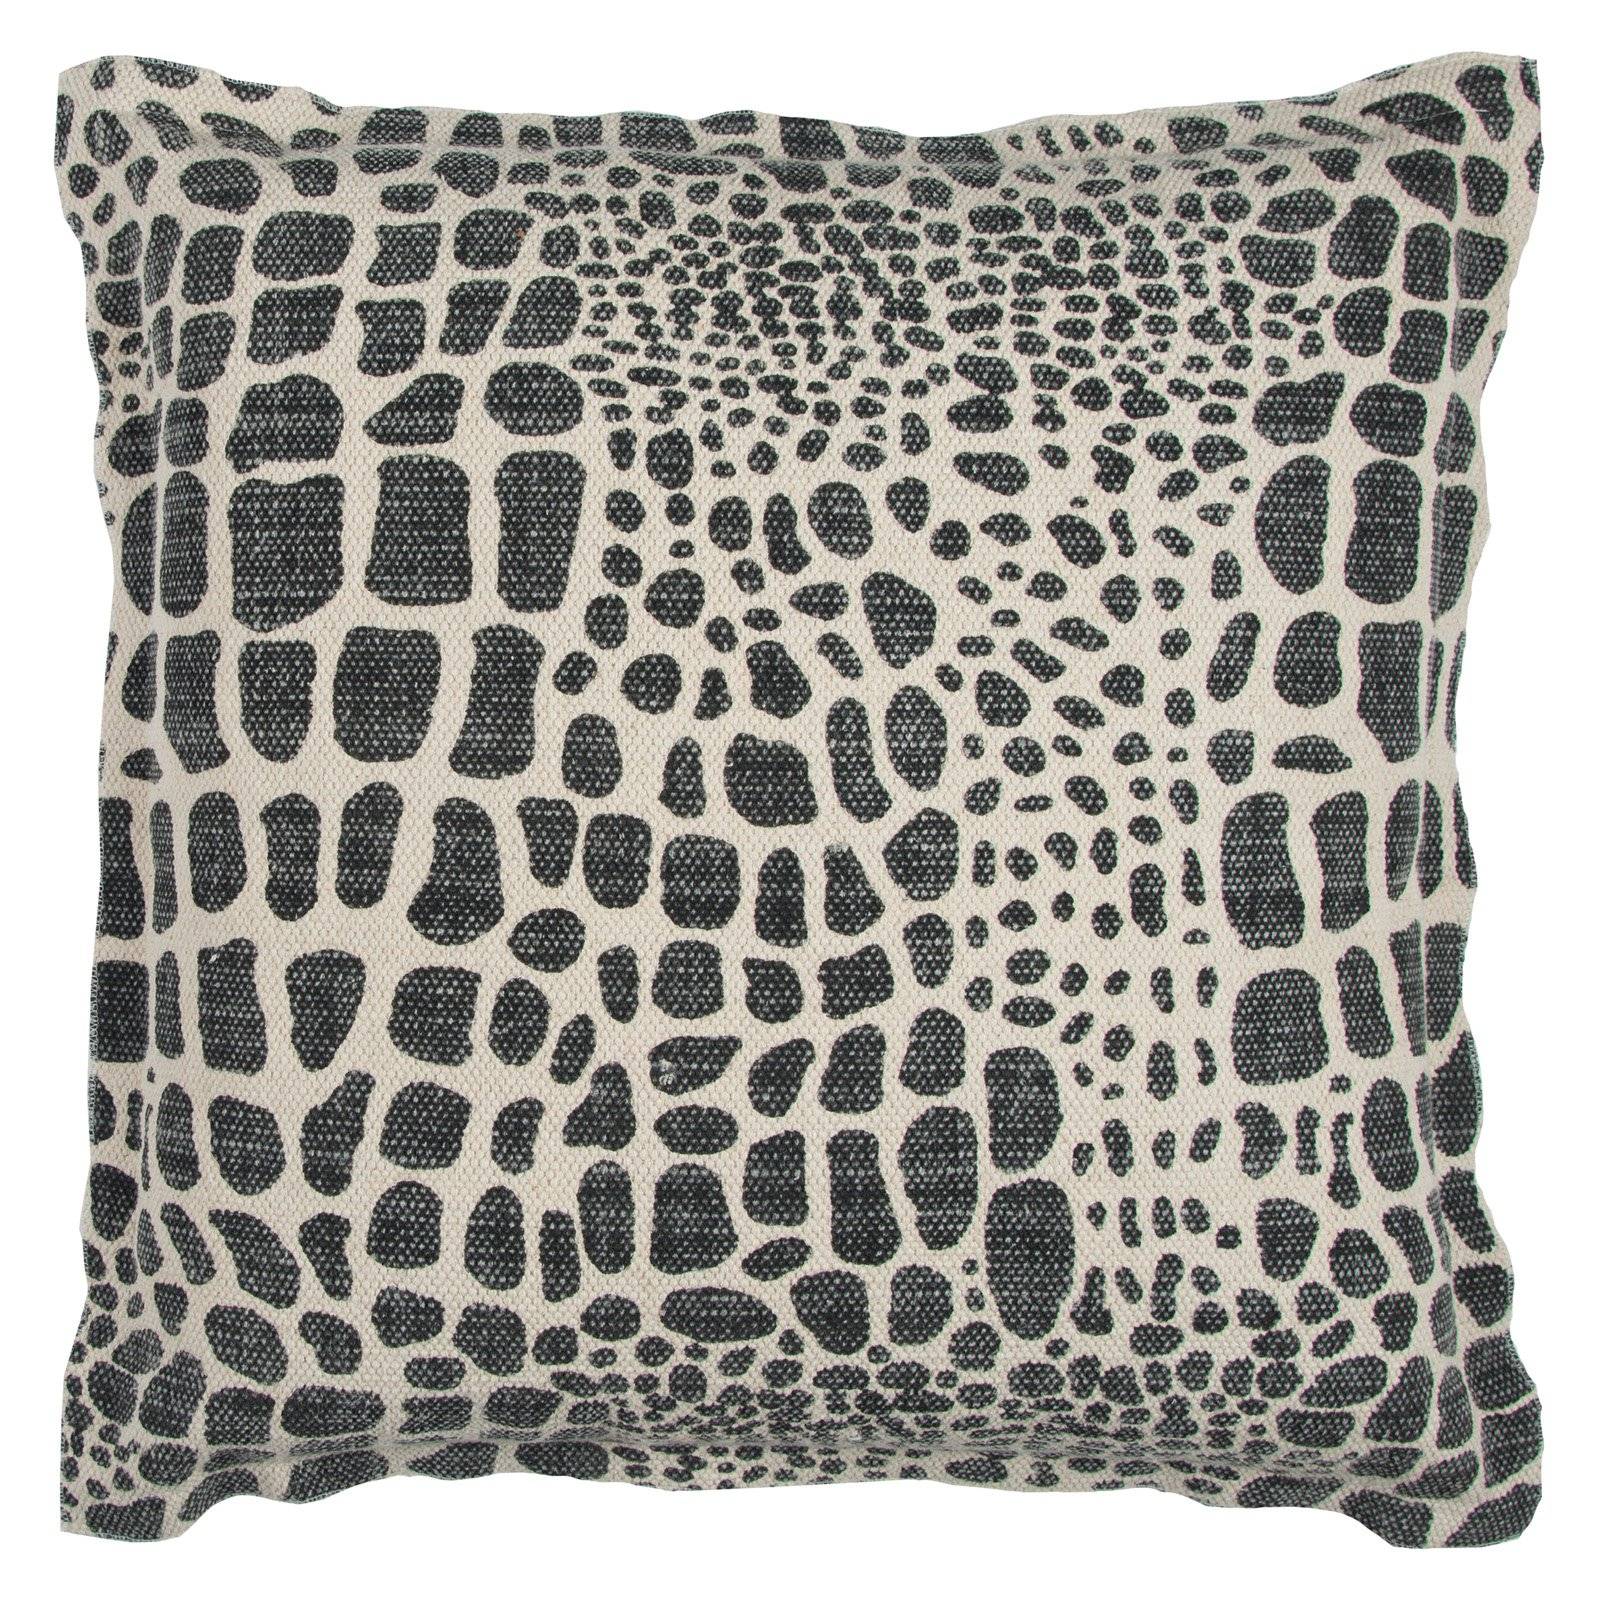 "Rizzy Home Decorative Poly Filled Throw Pillow Animalprint 22""X22"" Black"